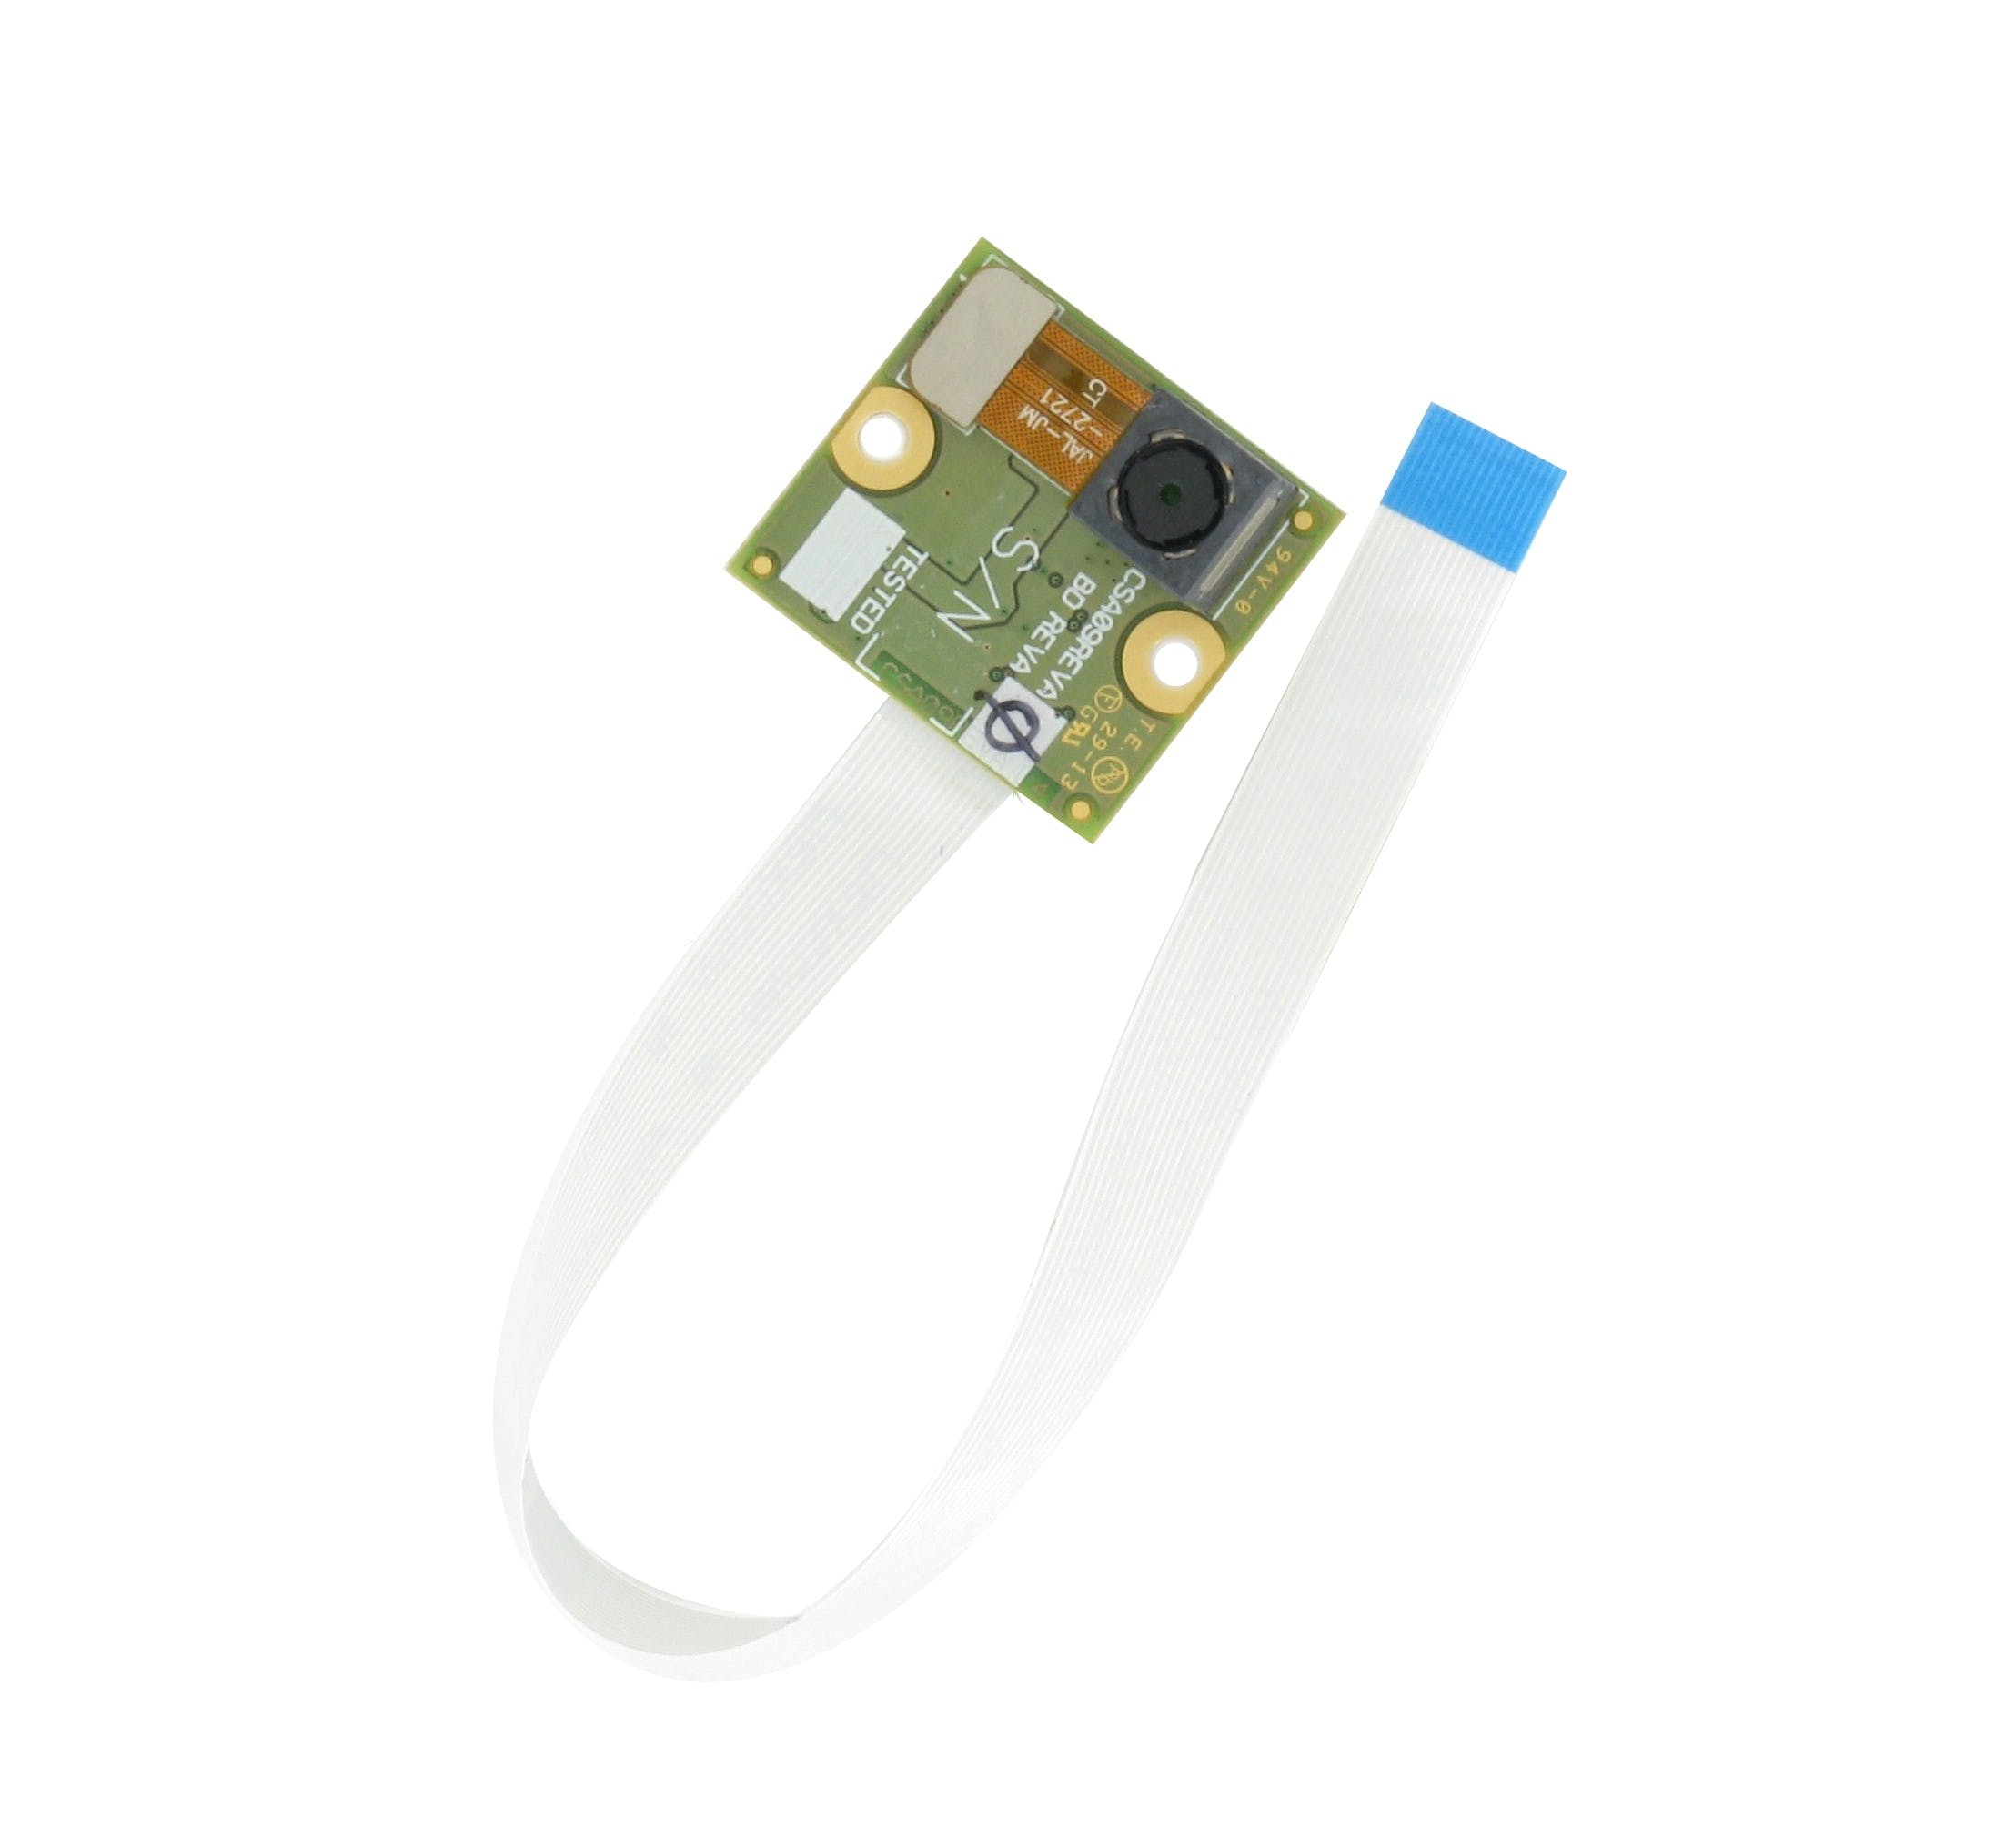 UDOO Camera Module